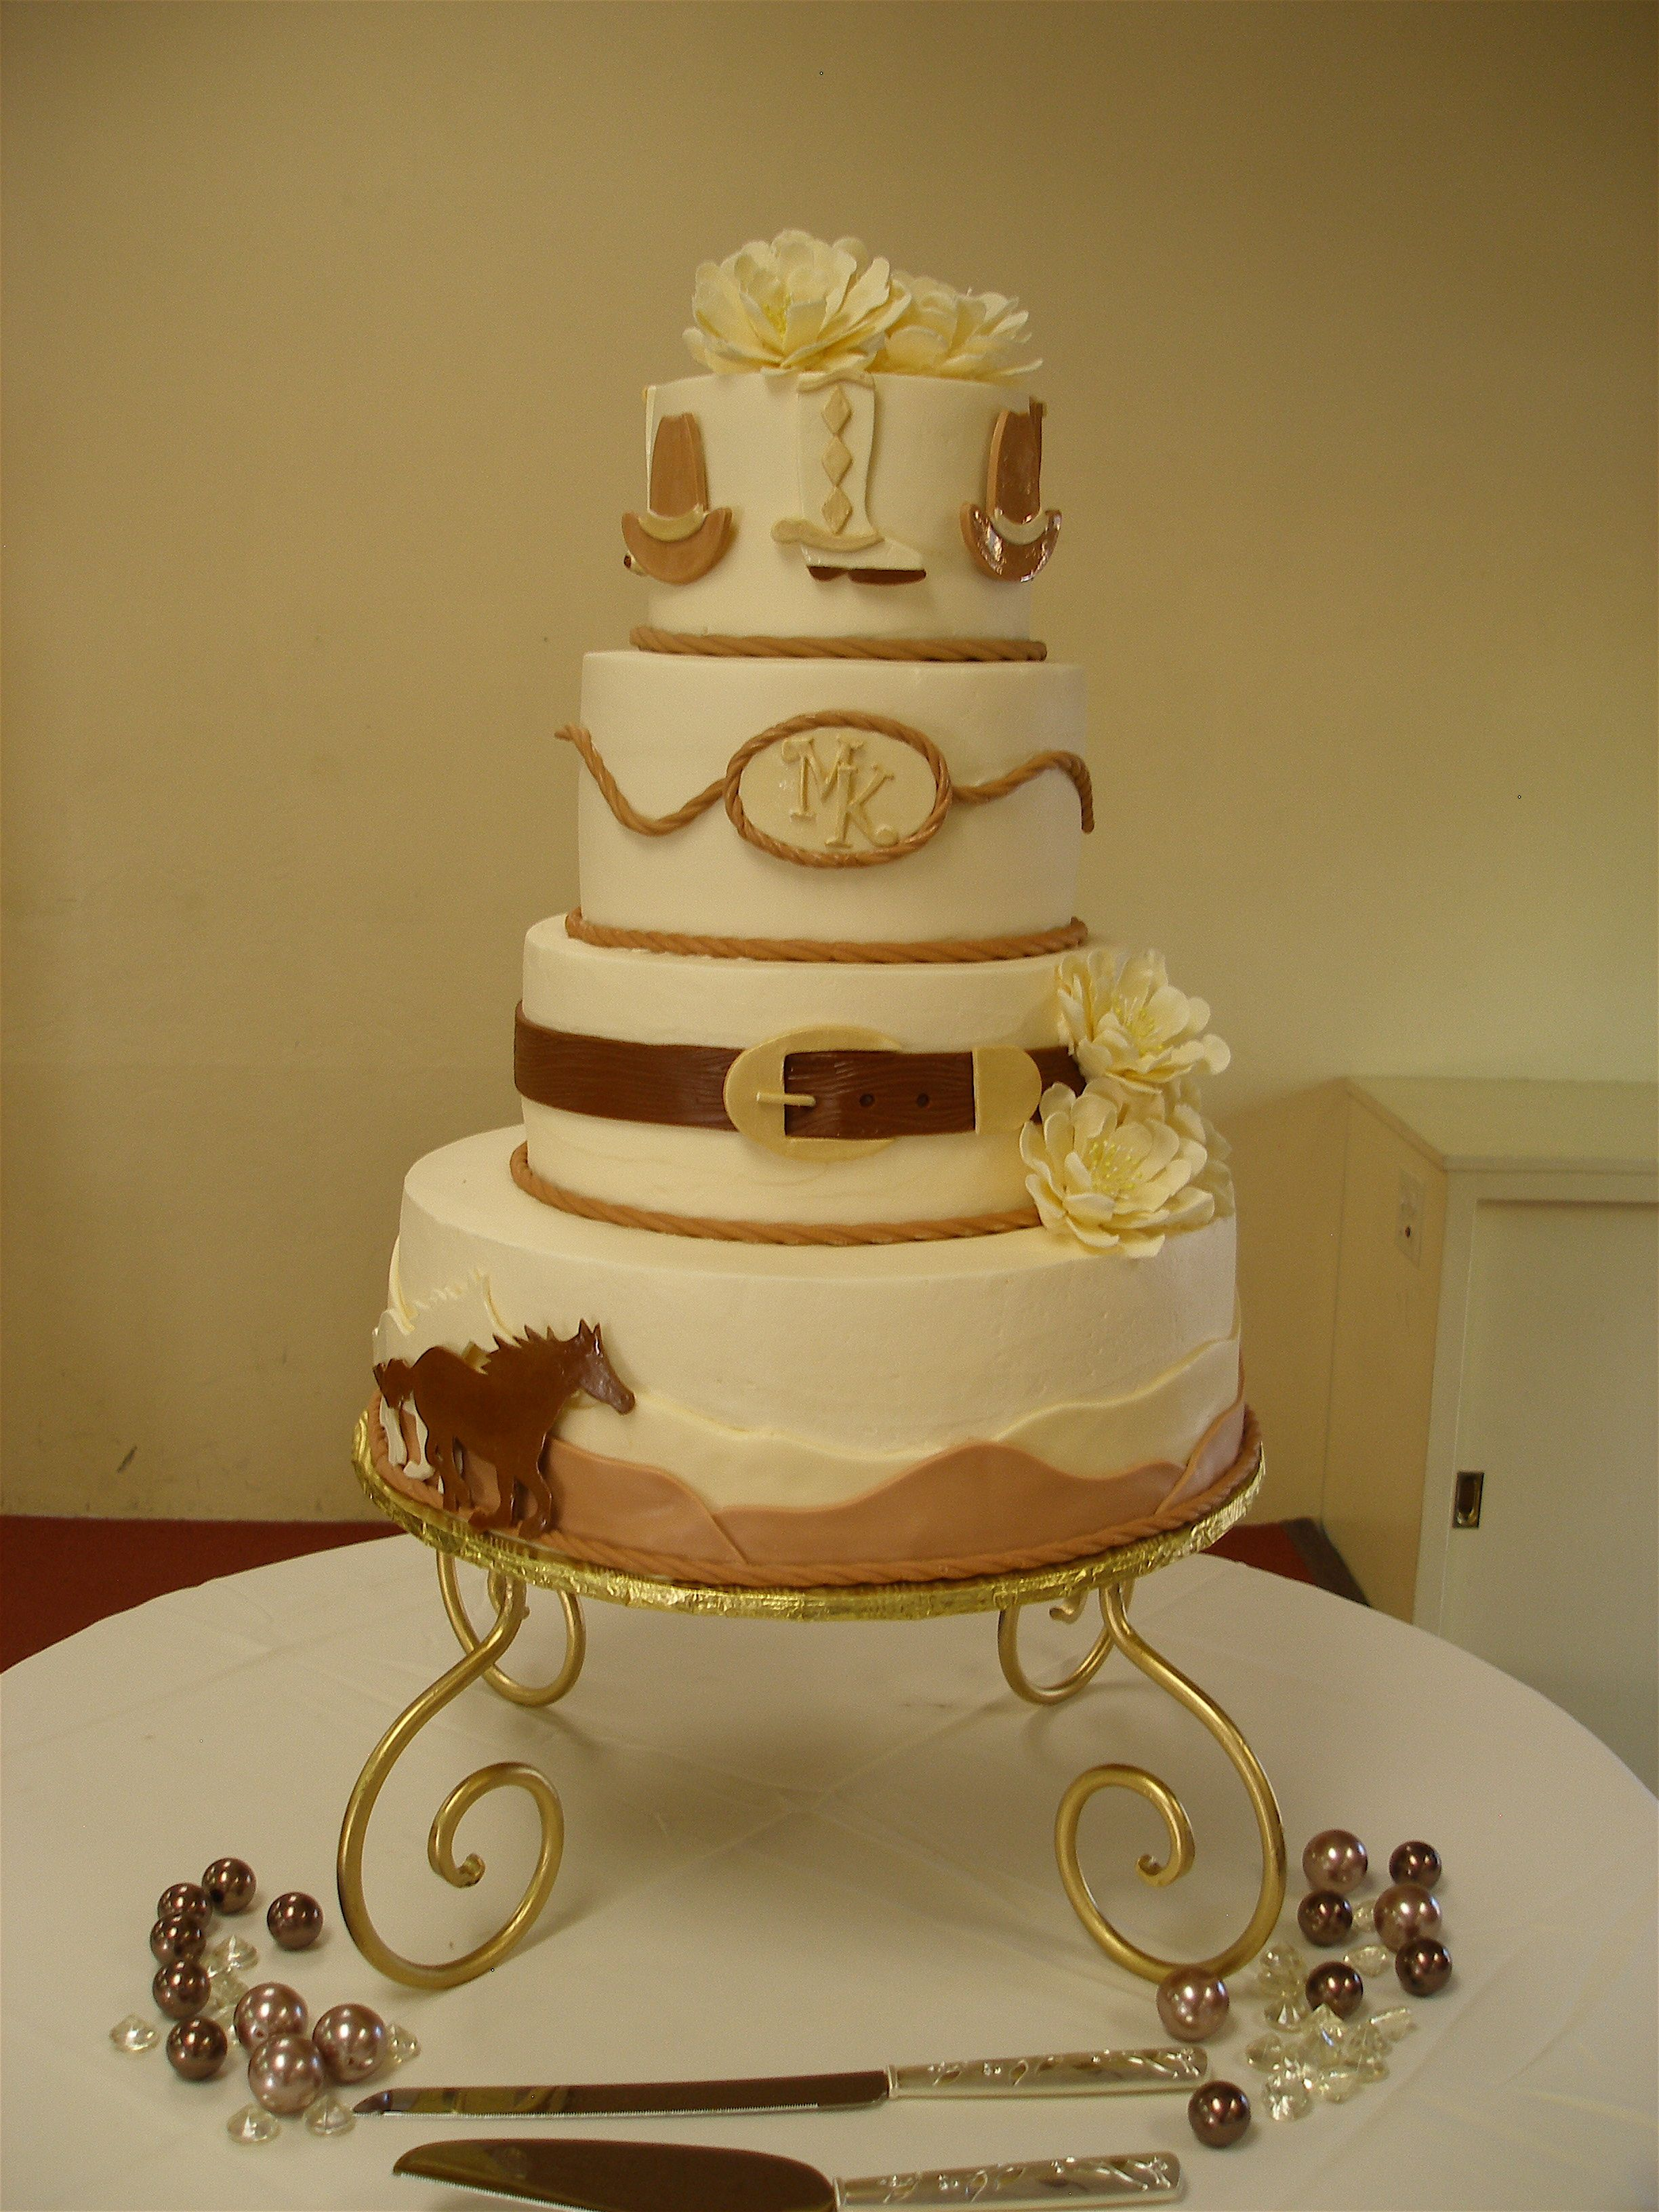 Western Theme Wedding Cake - To honor their families from Montana ...